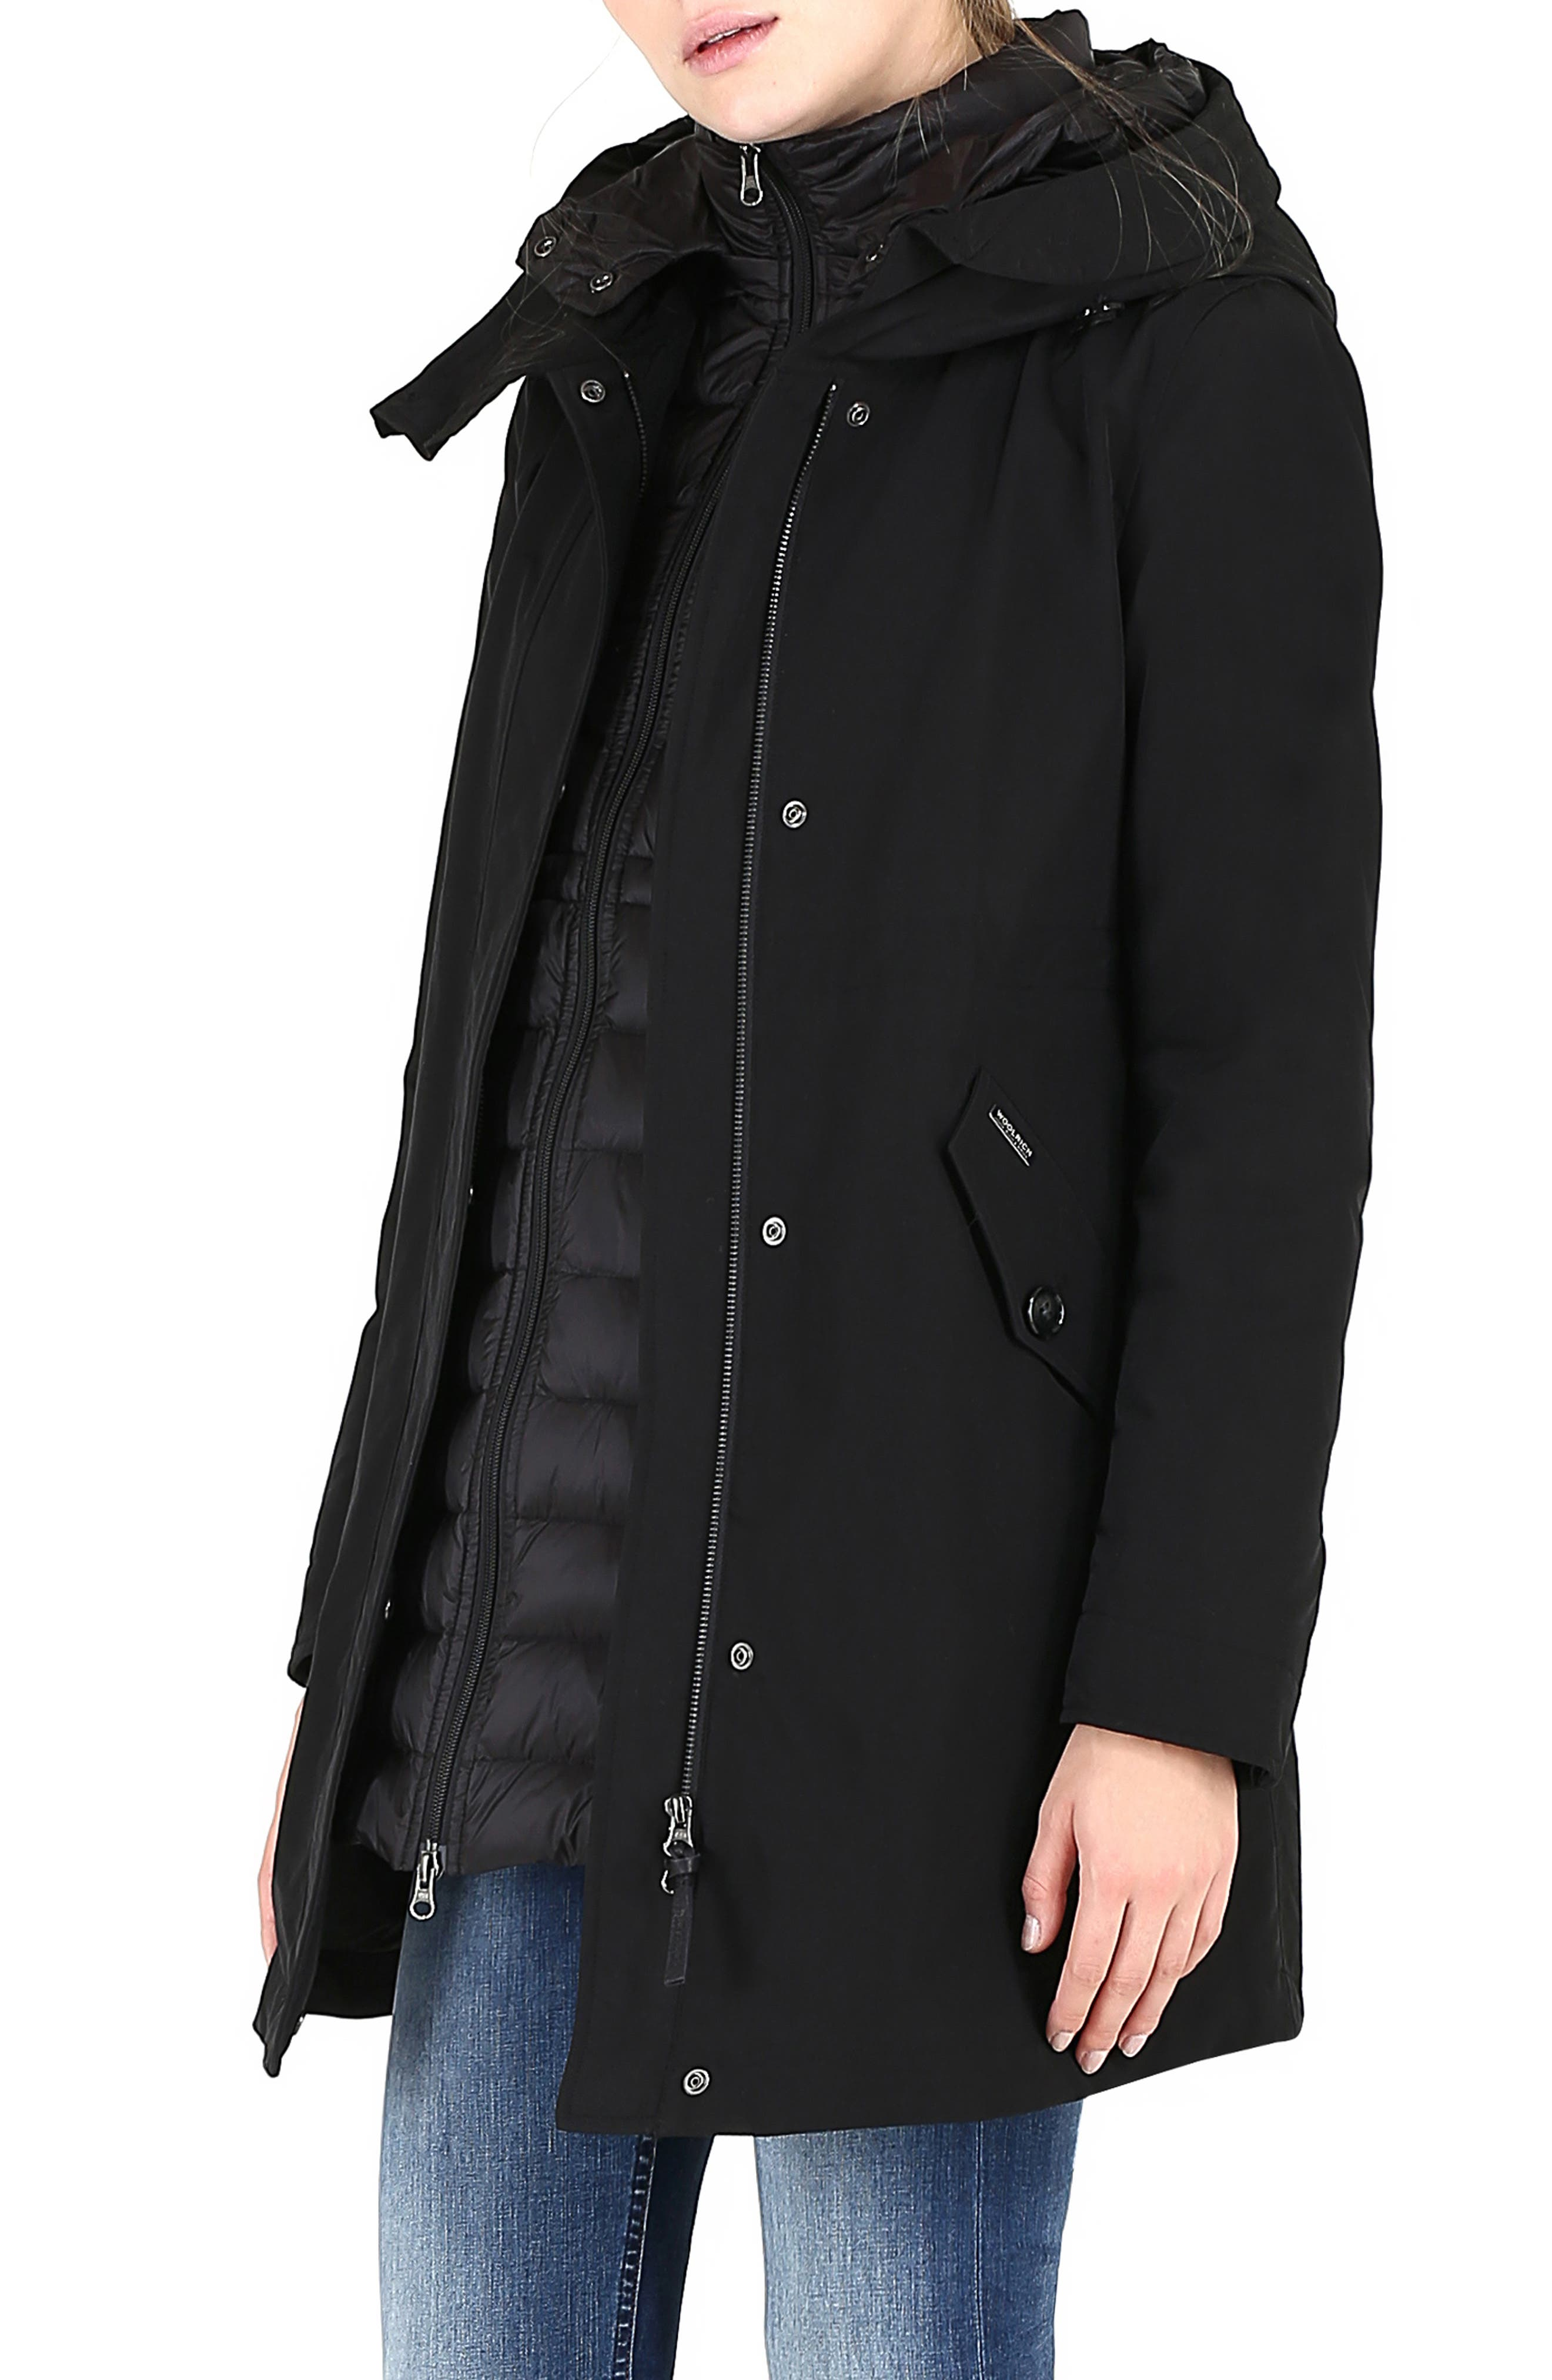 WOOLRICH, Long Military 3-in-1 Parka, Alternate thumbnail 4, color, 001